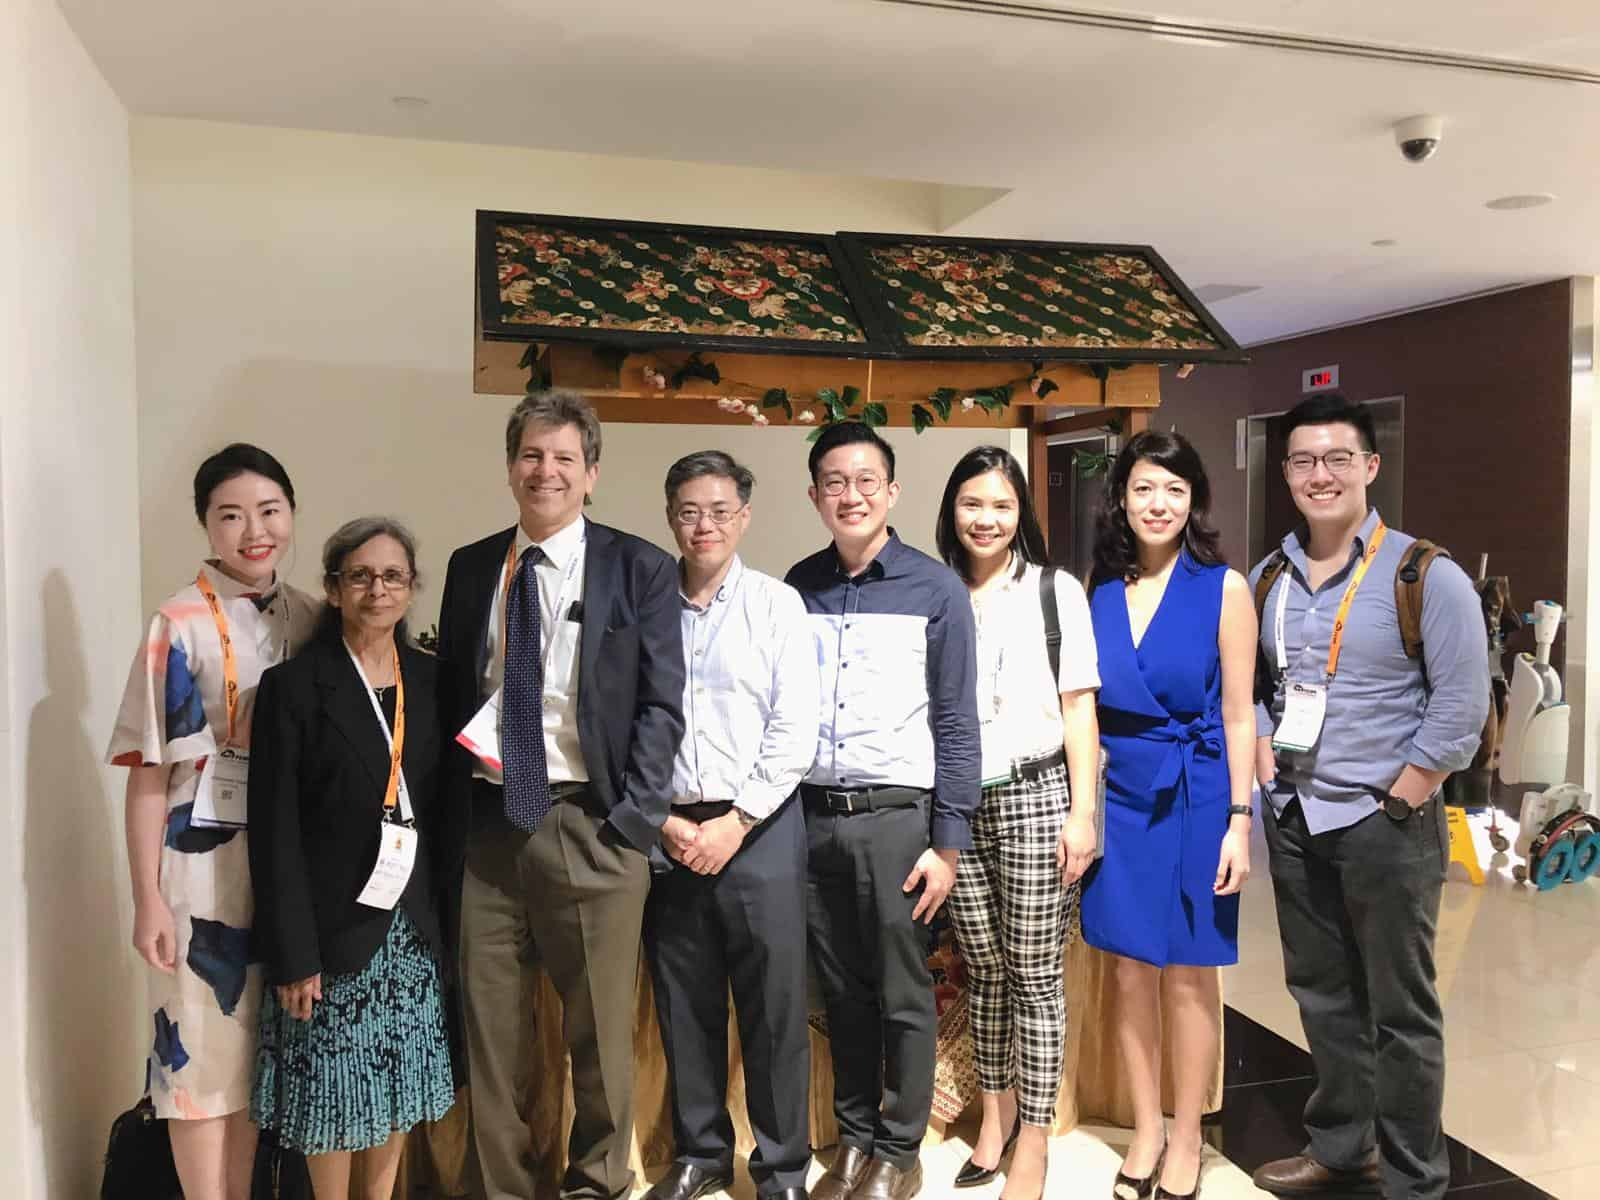 Dr Shantha Amrith (second from L) with friends and colleagues at the 5th International Thyroid Eye Disease Society (ITEDS) Symposium held on 20-23 February 2019 in Singapore